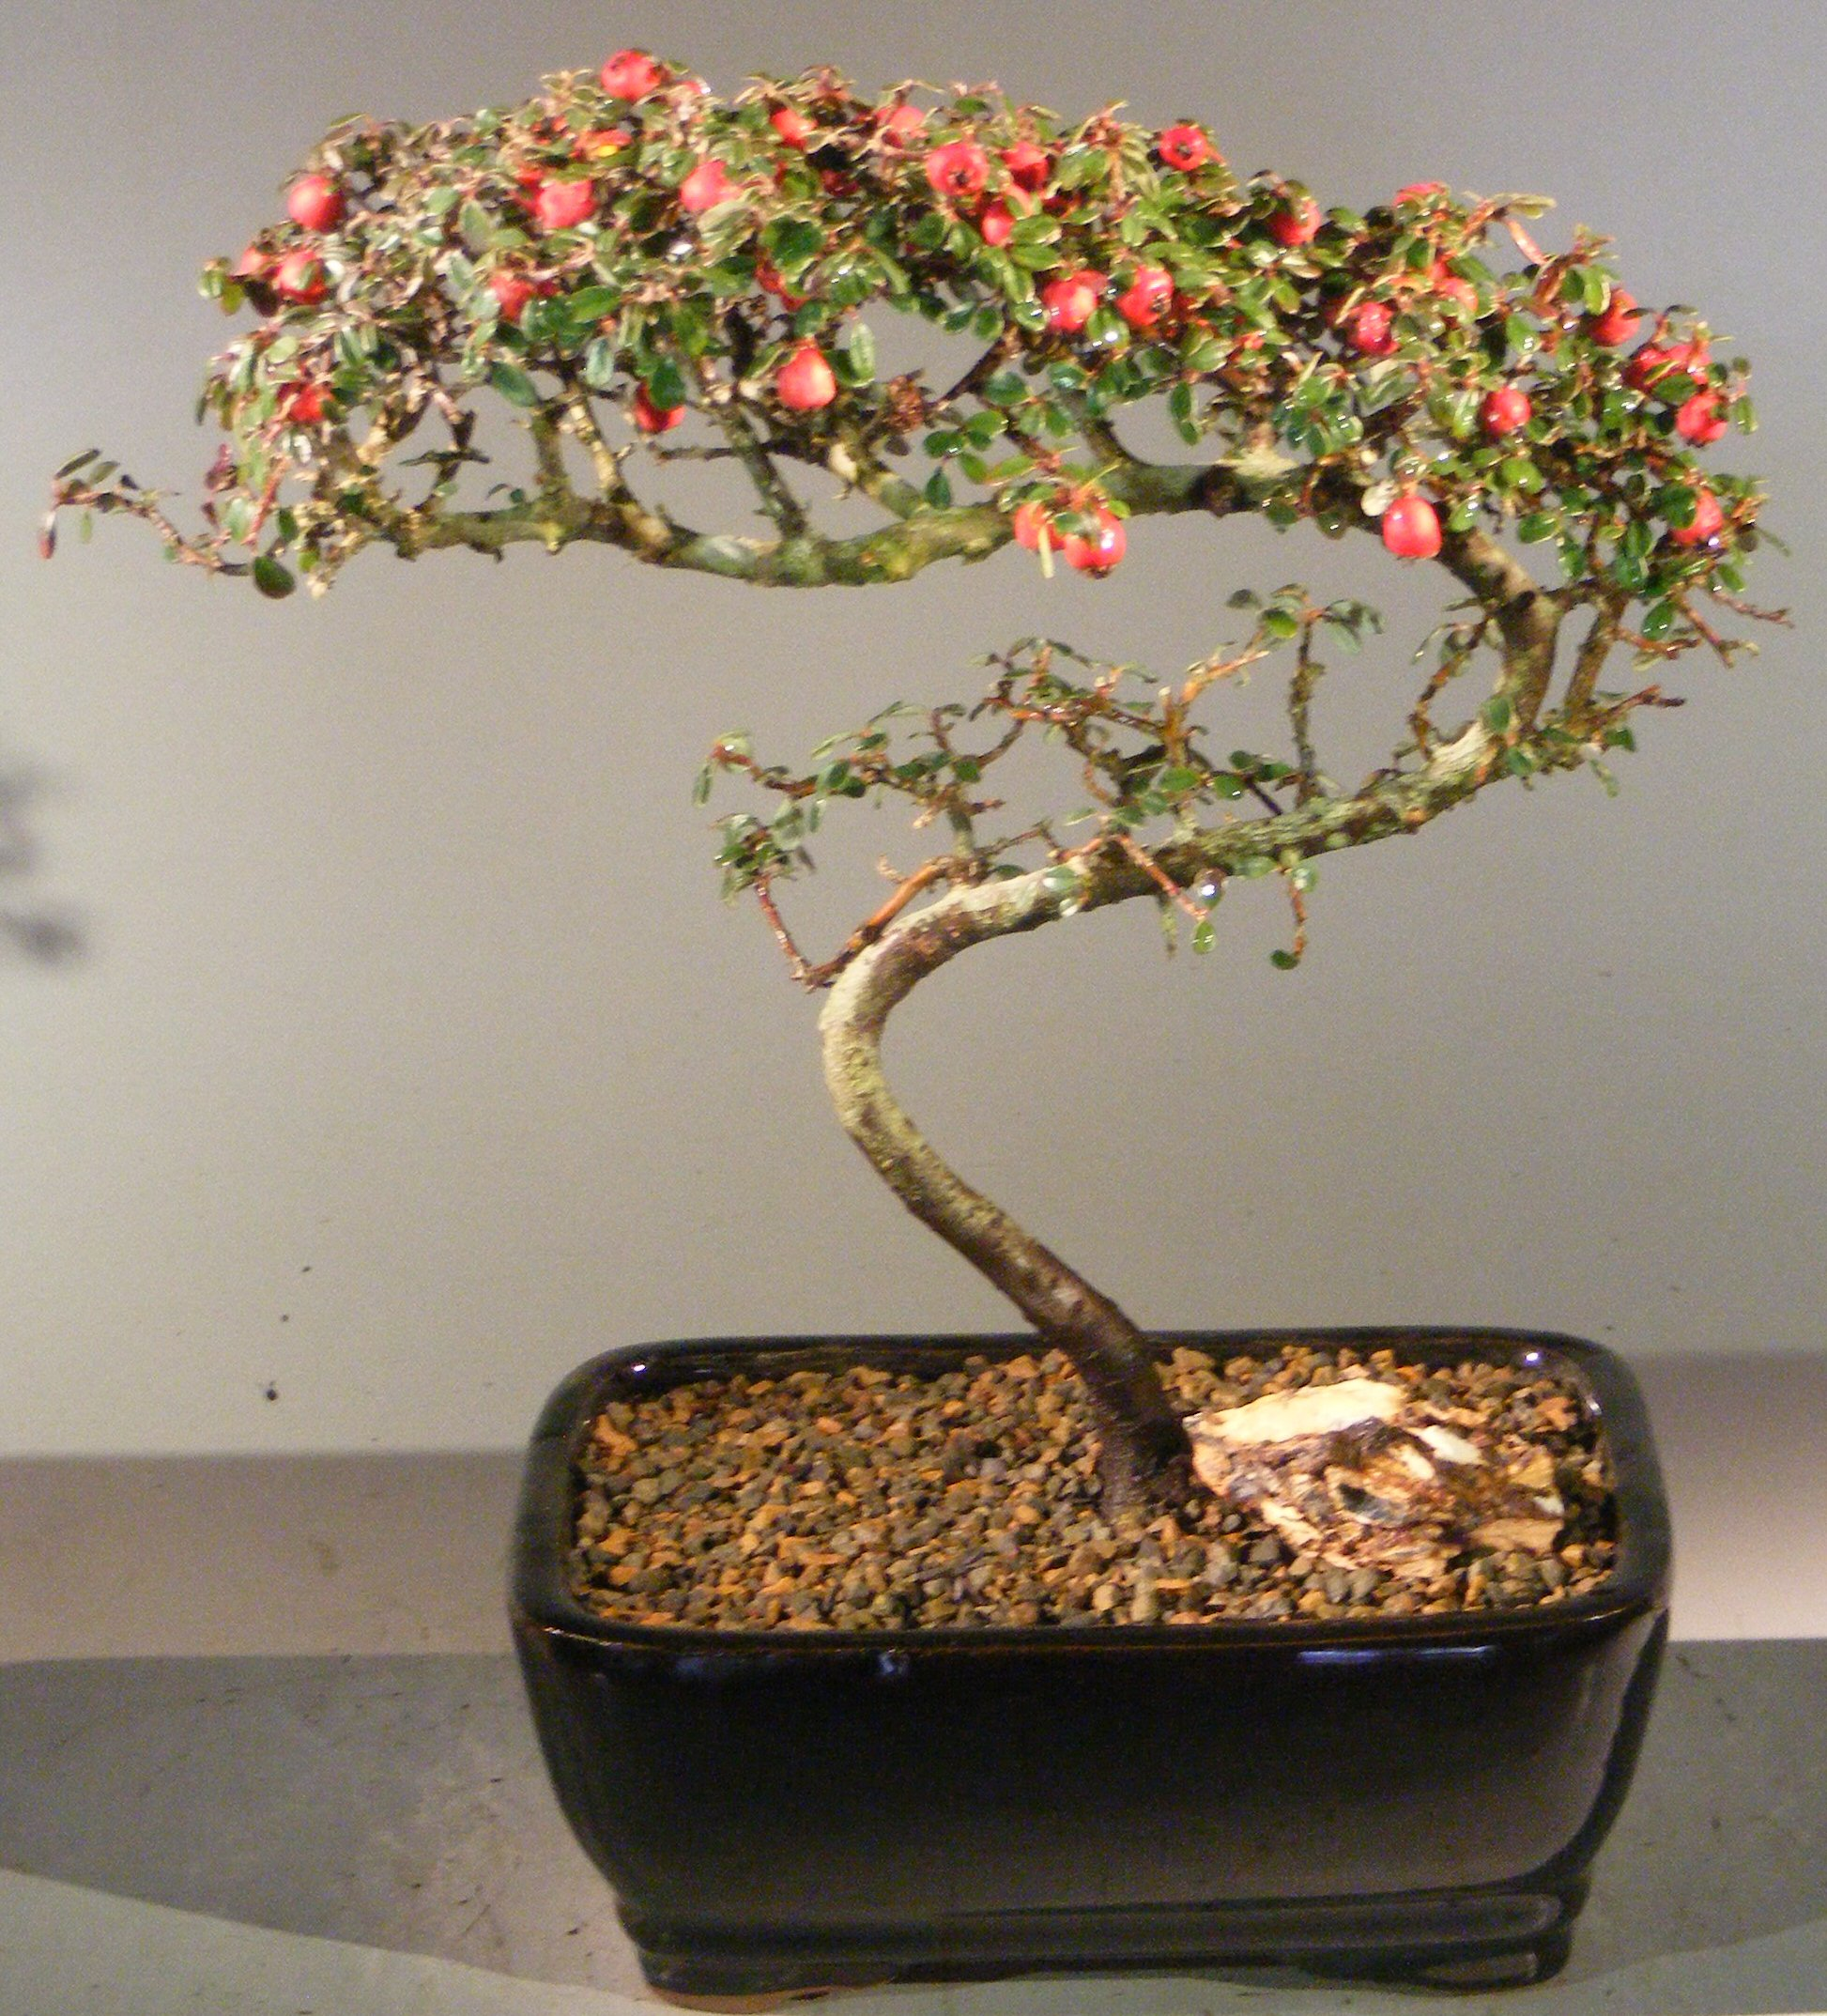 Flowering & Fruiting Evergreen Cotoneaster Bonsai TreeCurved Trunk Style(dammeri 'streibs findling') Image